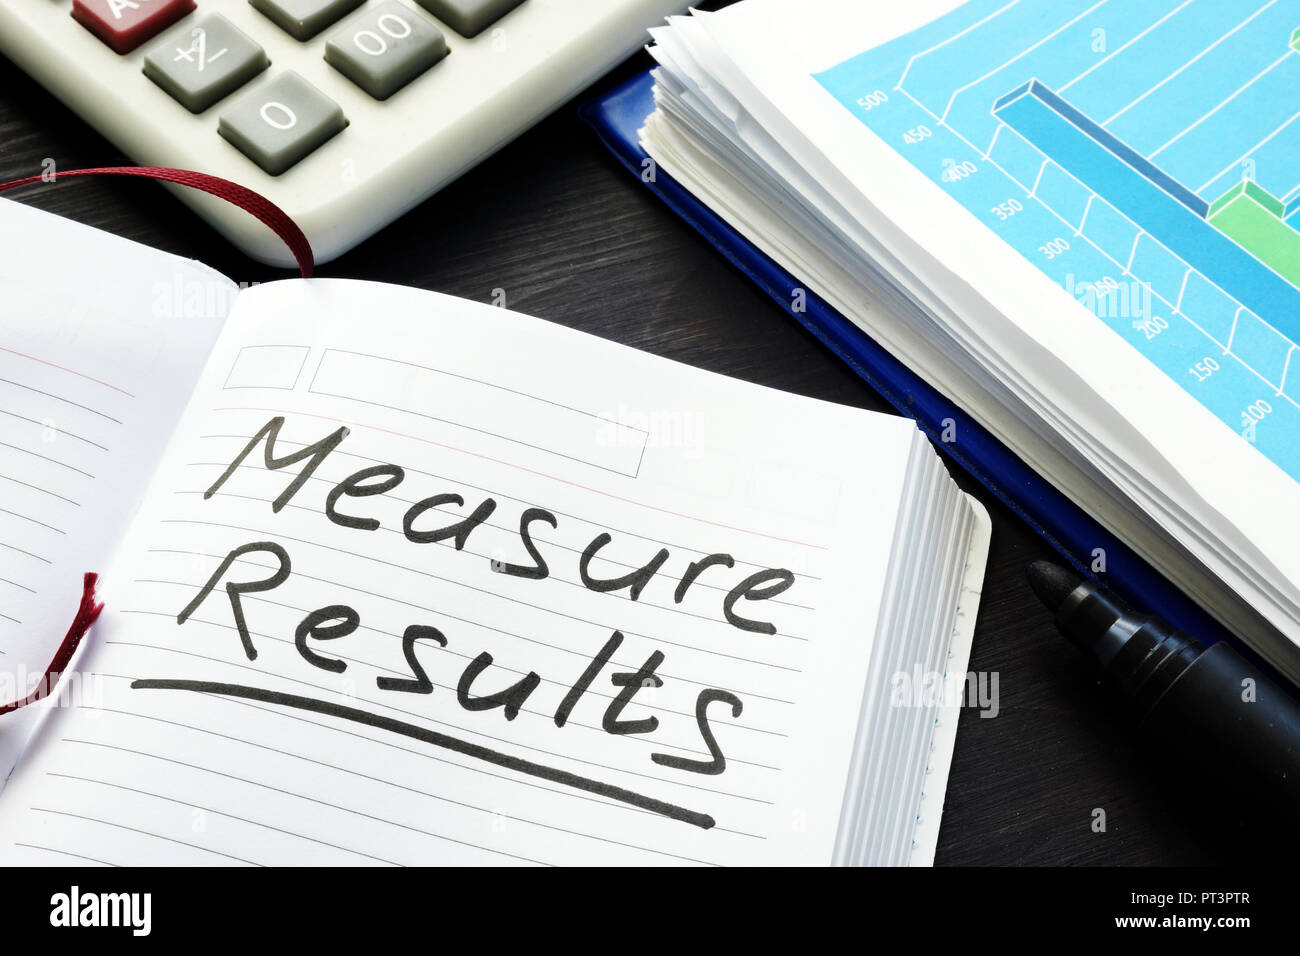 Measure results written by hand in a note pad. - Stock Image